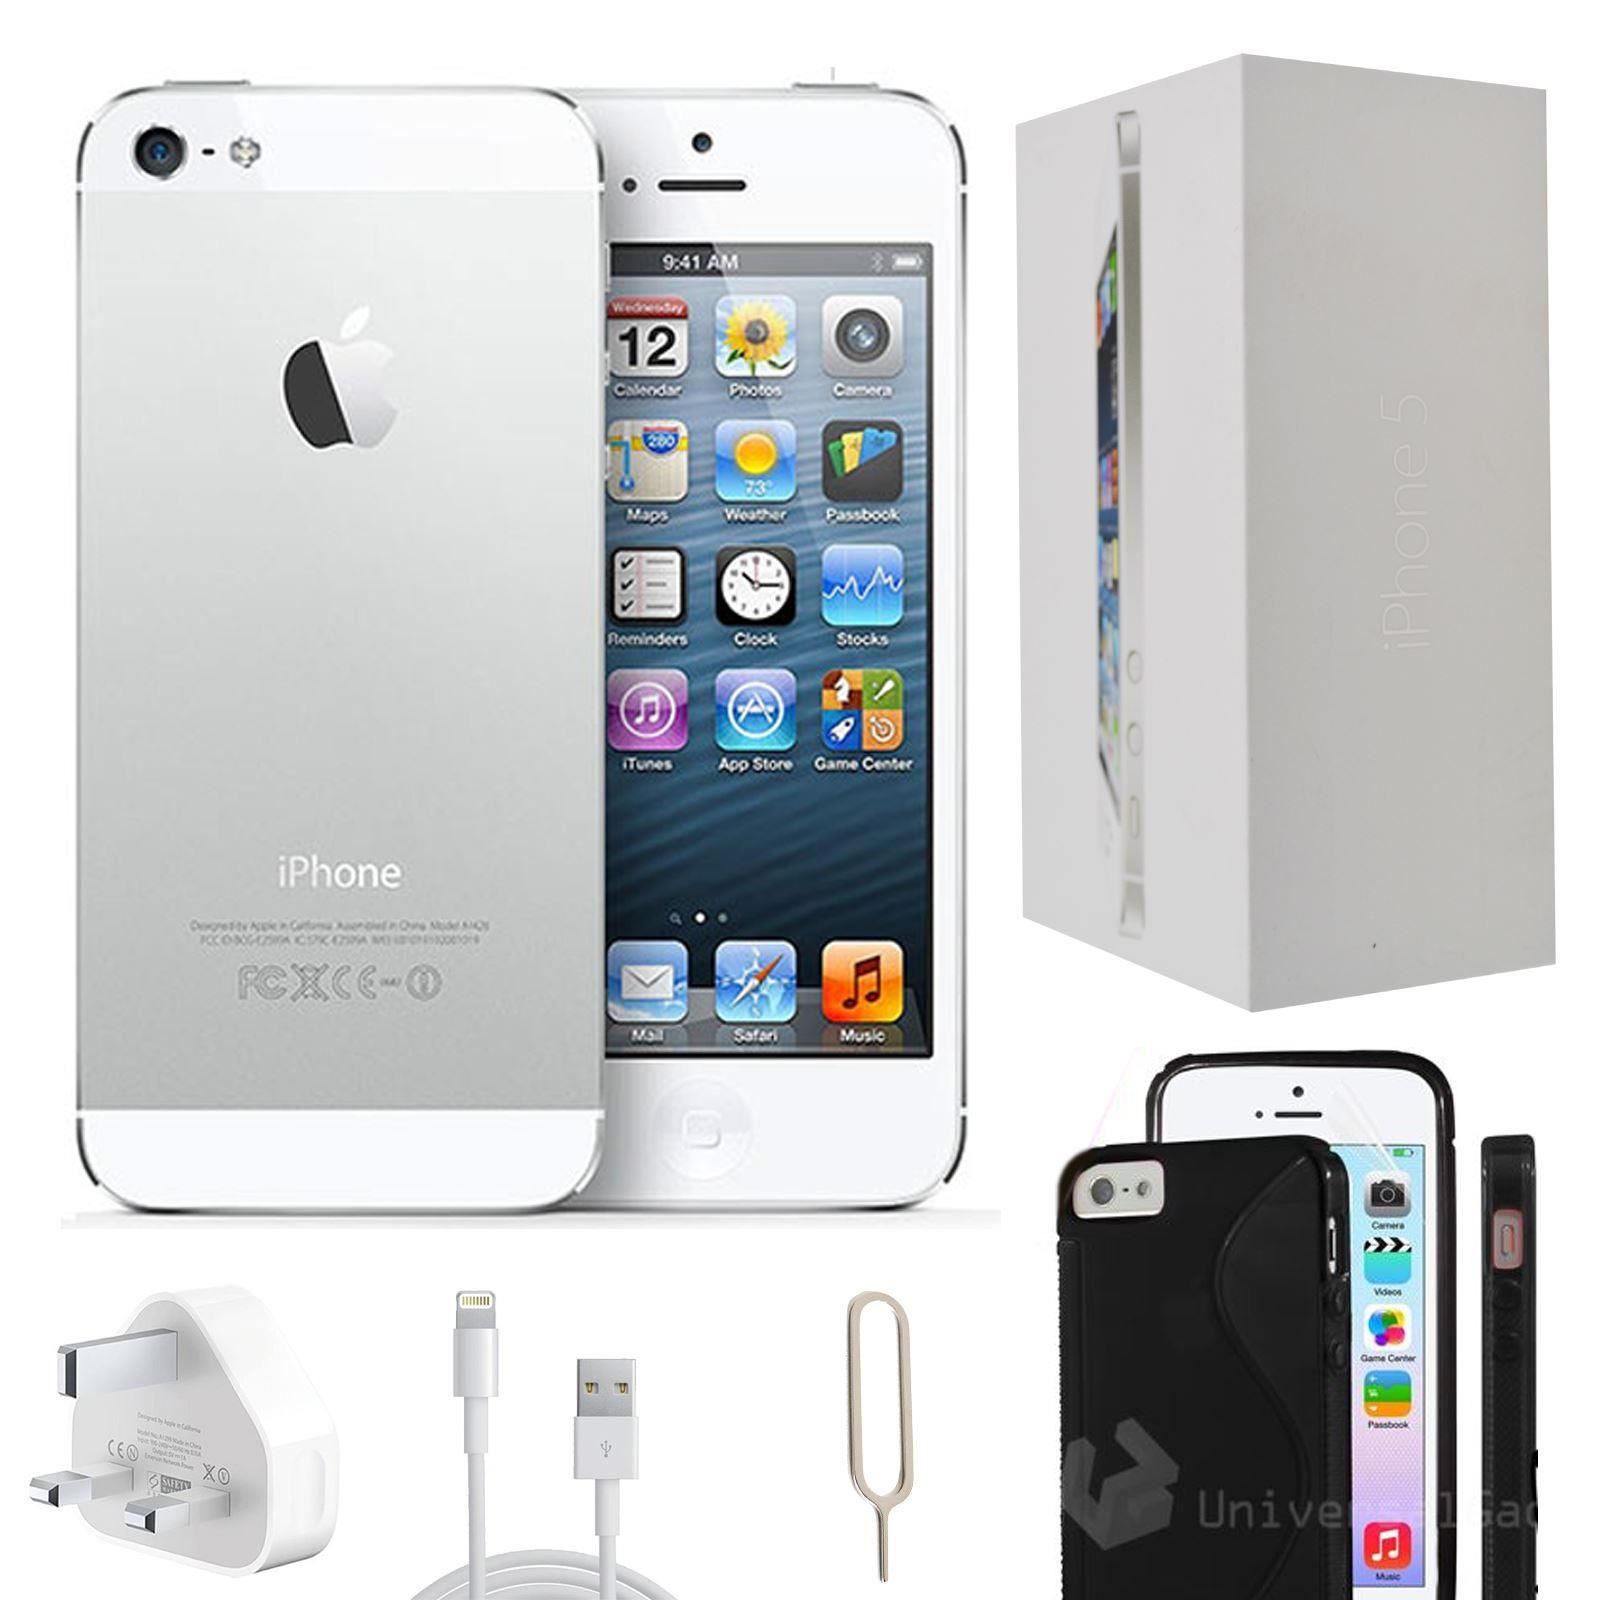 apple iphone 5 32gb white unlocked refurbished grade a accessories 5025743772446 ebay. Black Bedroom Furniture Sets. Home Design Ideas